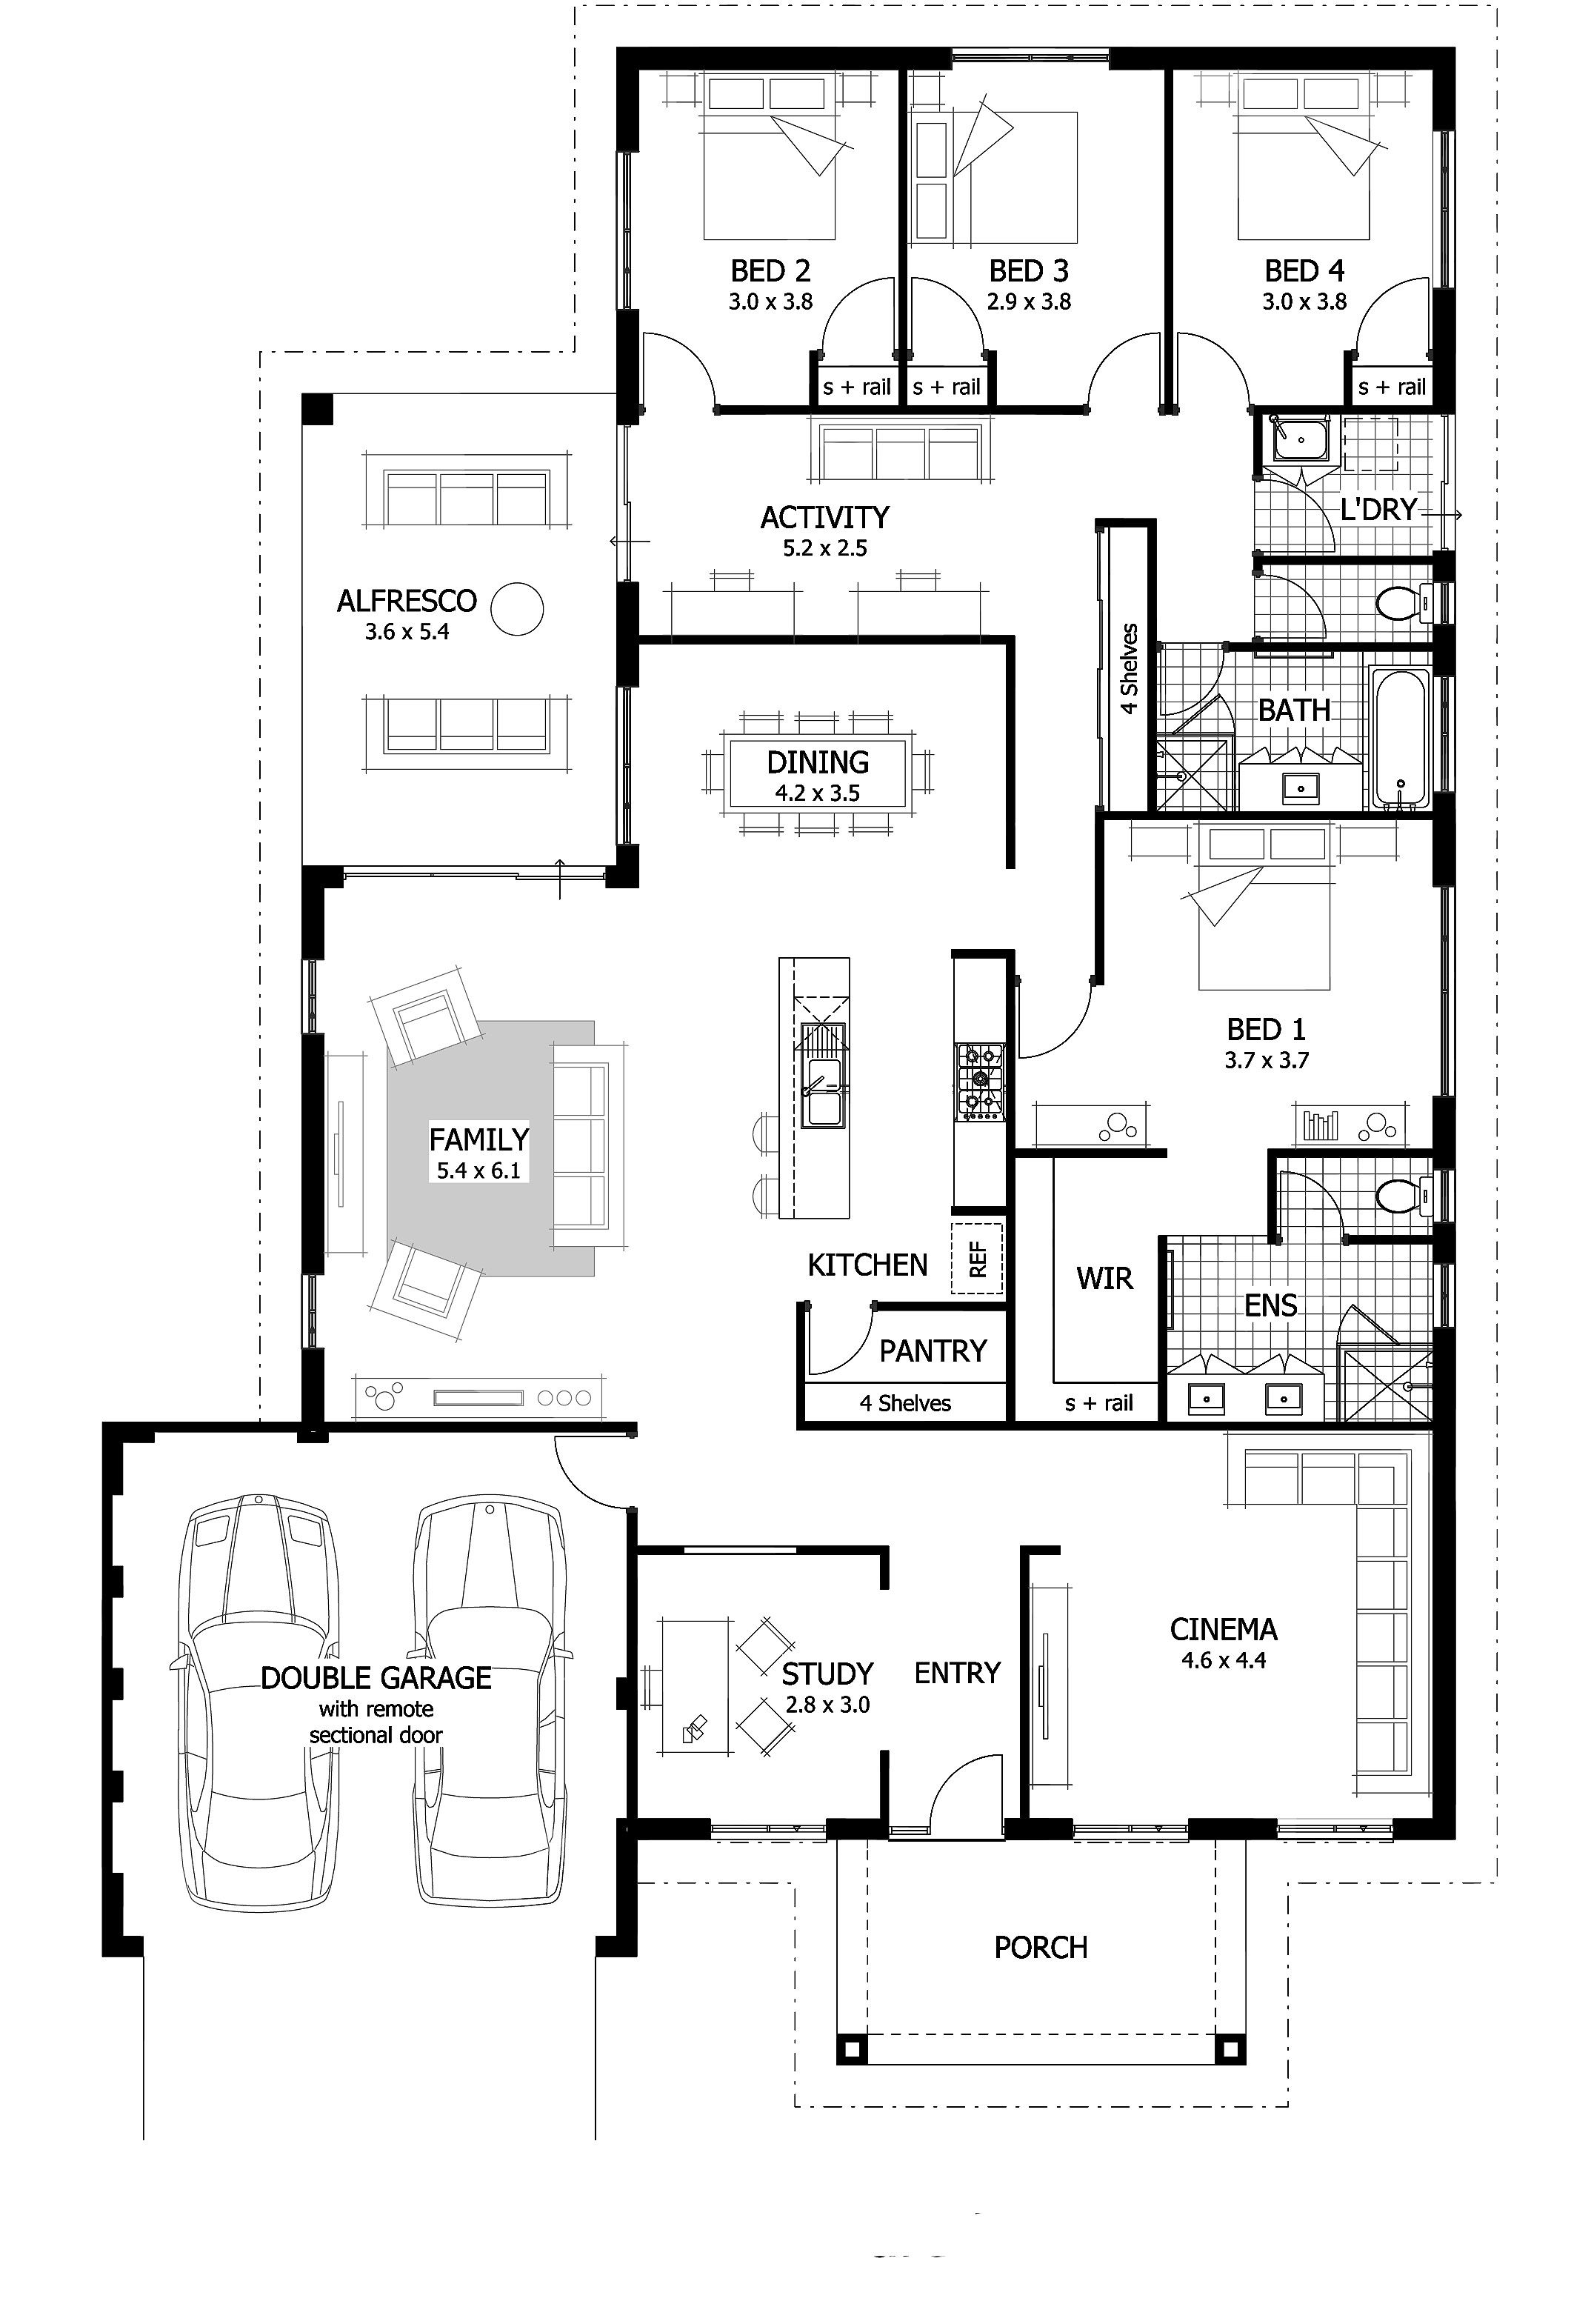 bedroom house plans amp home designs celebration homes ranch plan ...